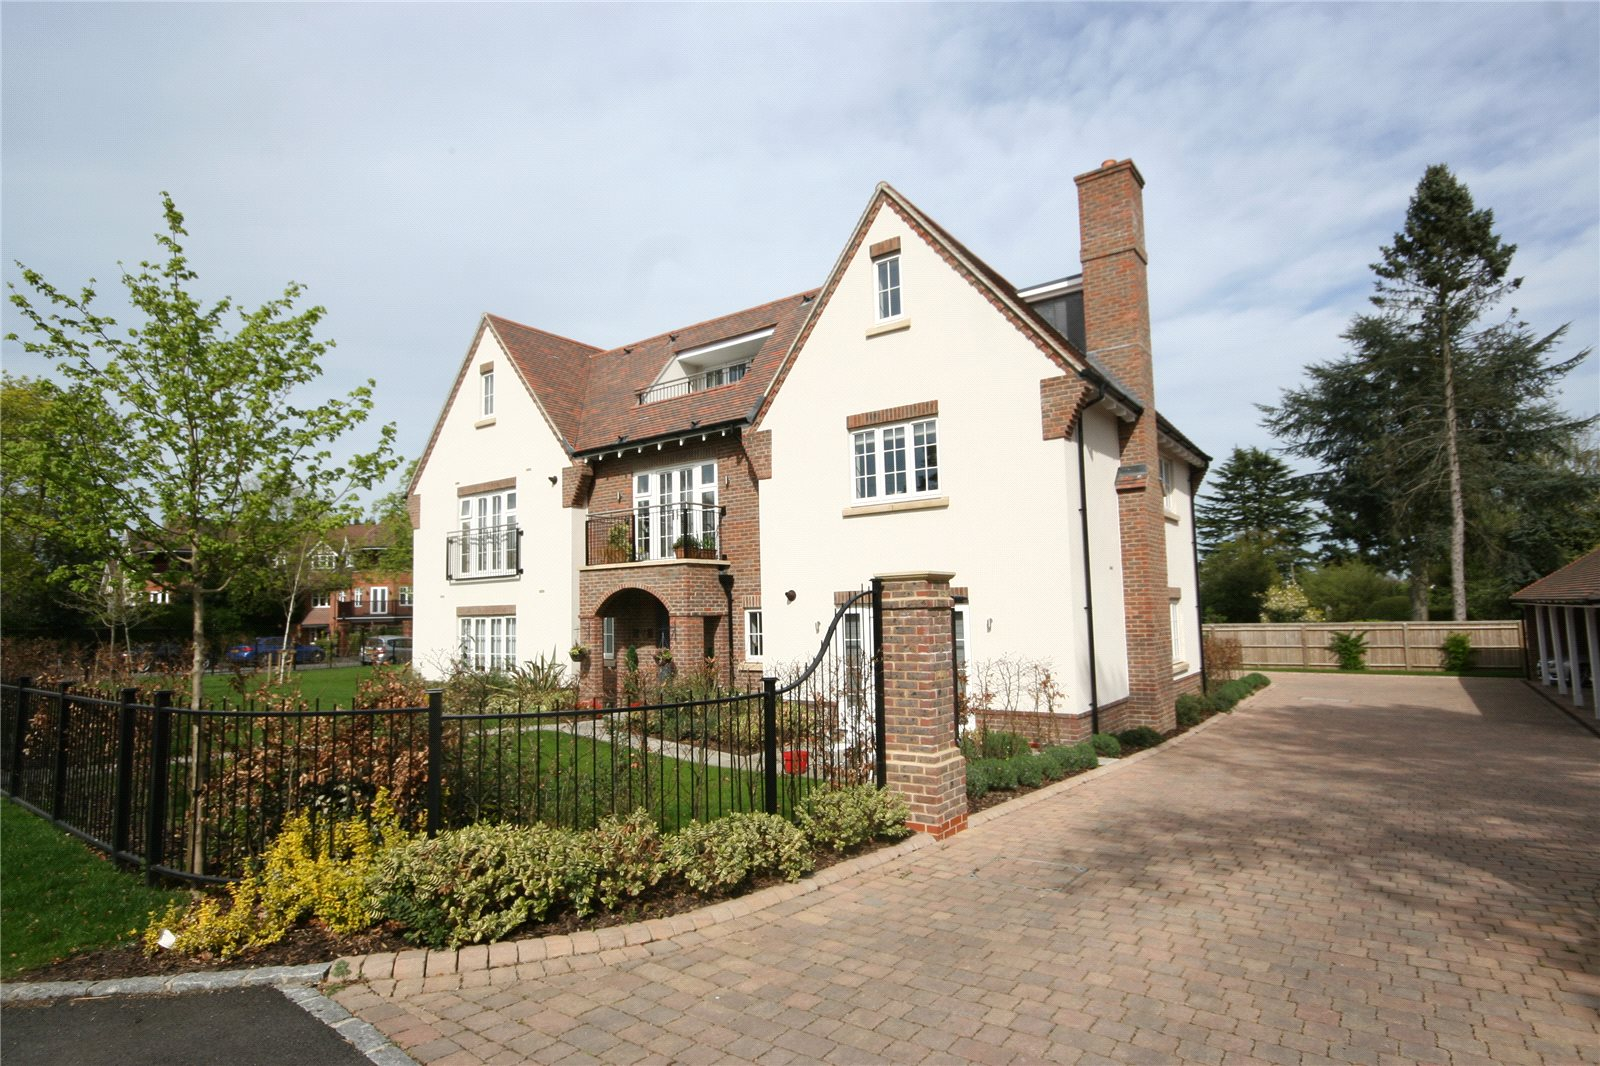 Additional photo for property listing at Aspin Lodge, 38 North Park, Gerrards Cross, Buckinghamshire, SL9 Gerrards Cross, 영국